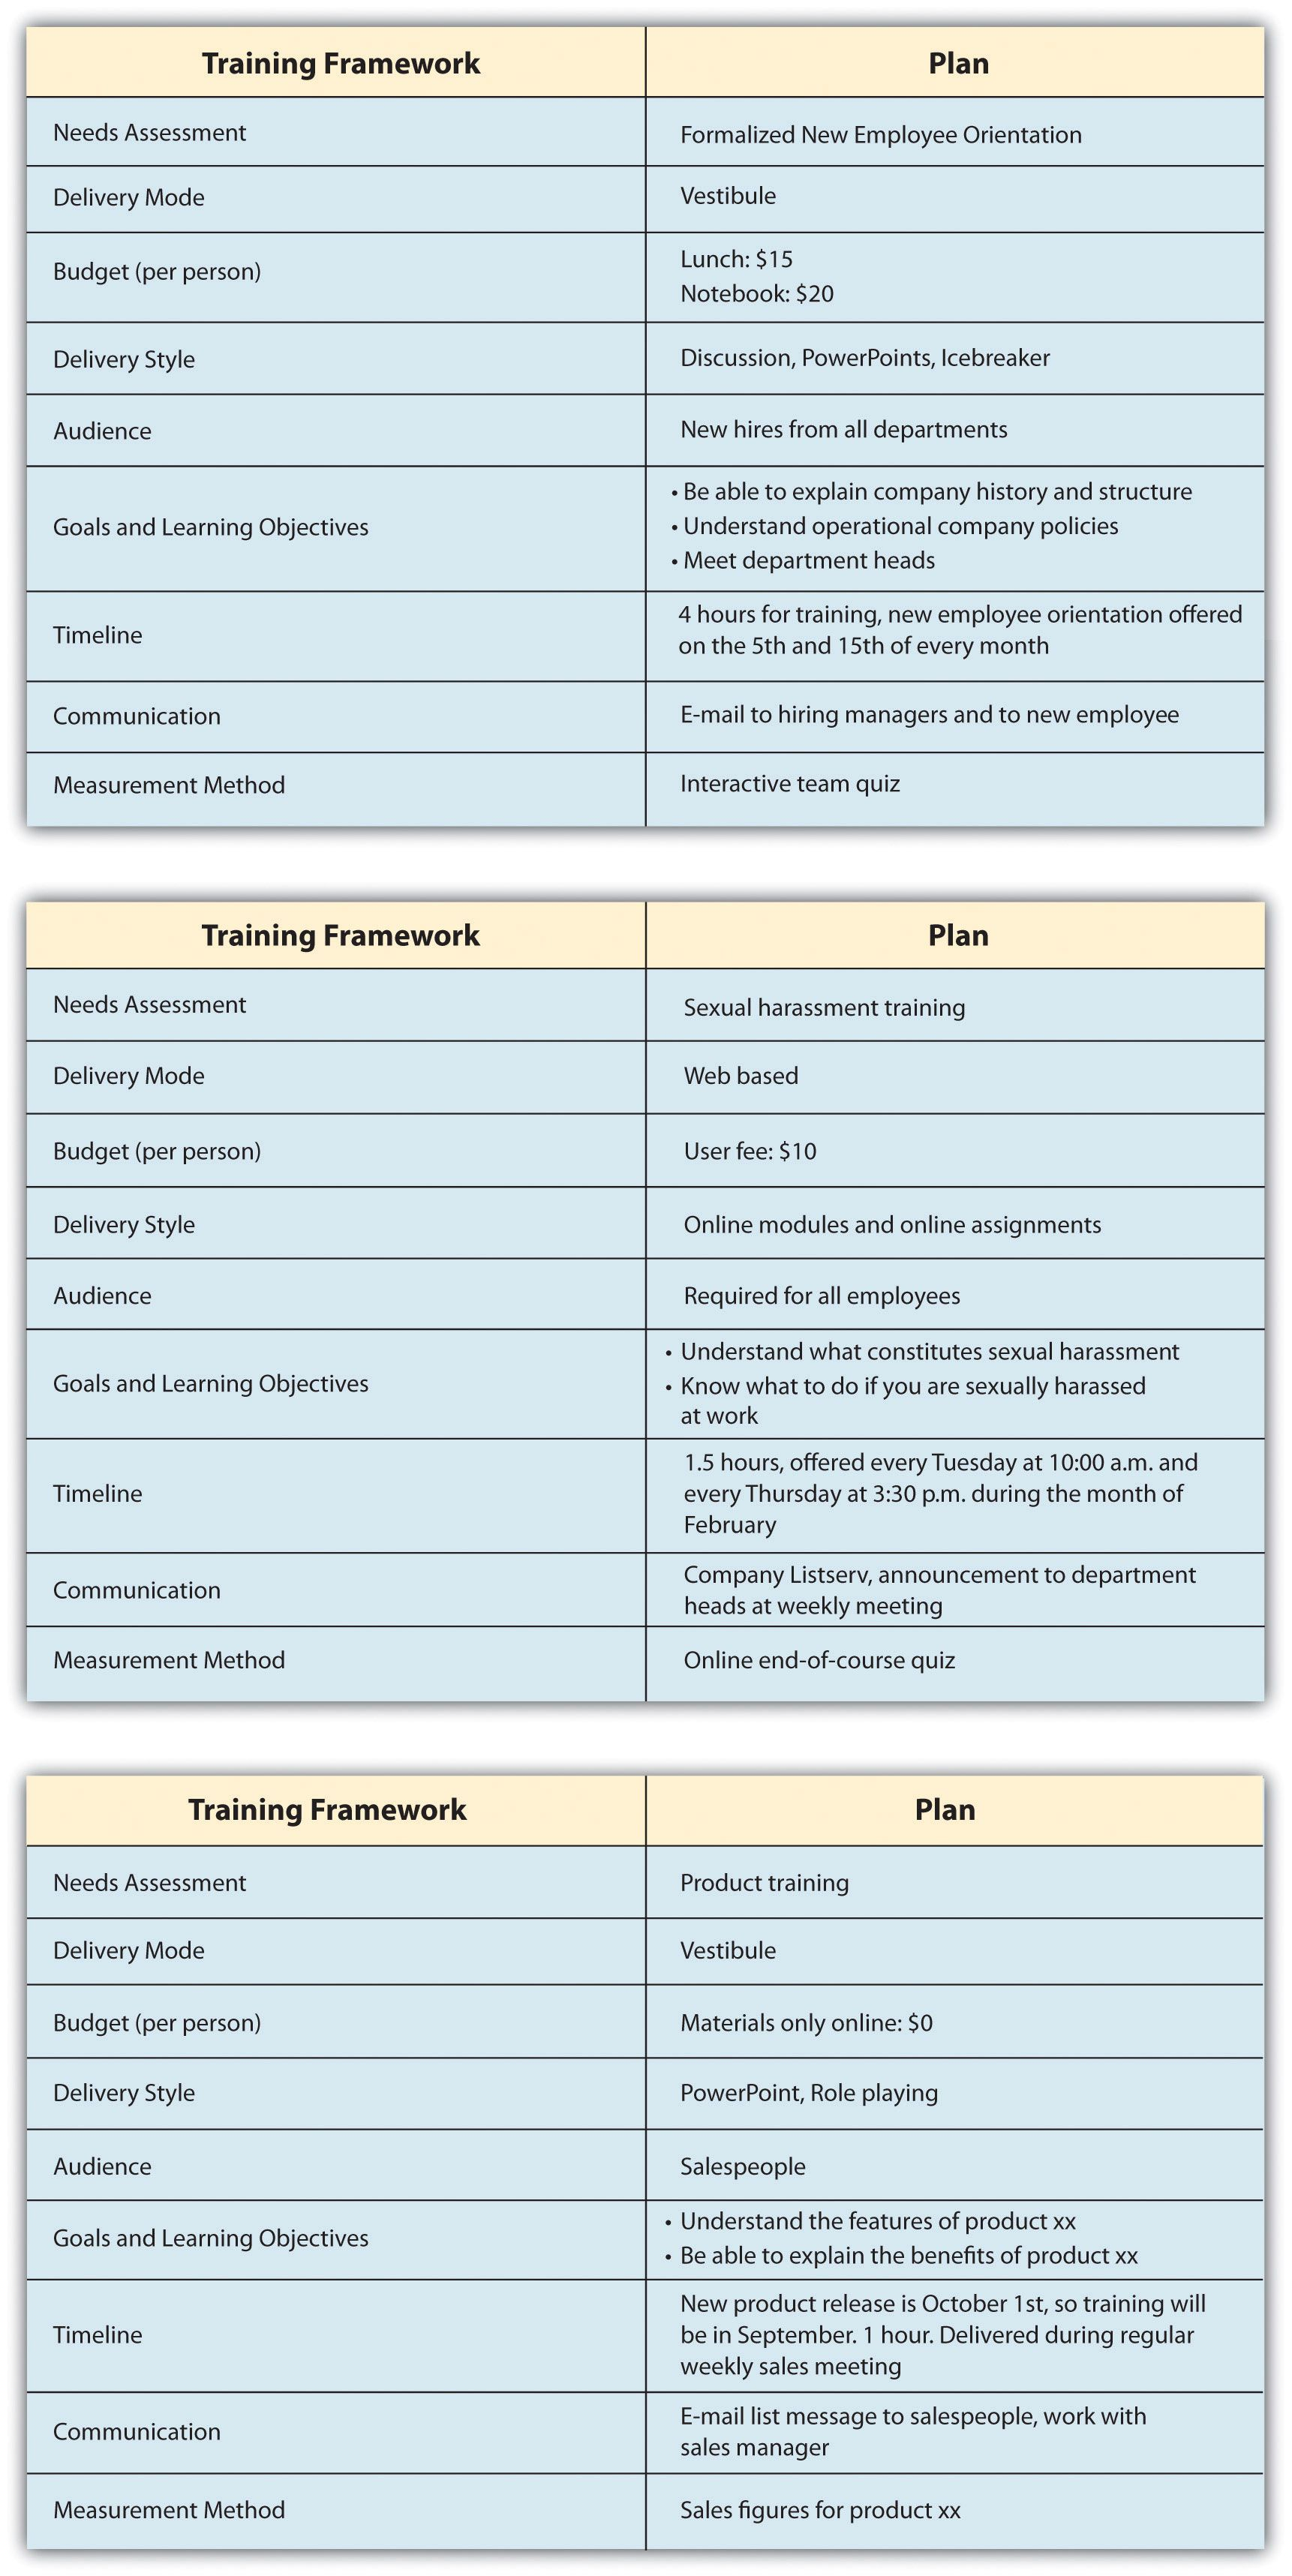 New Employee Training Plan Template Inquire before your